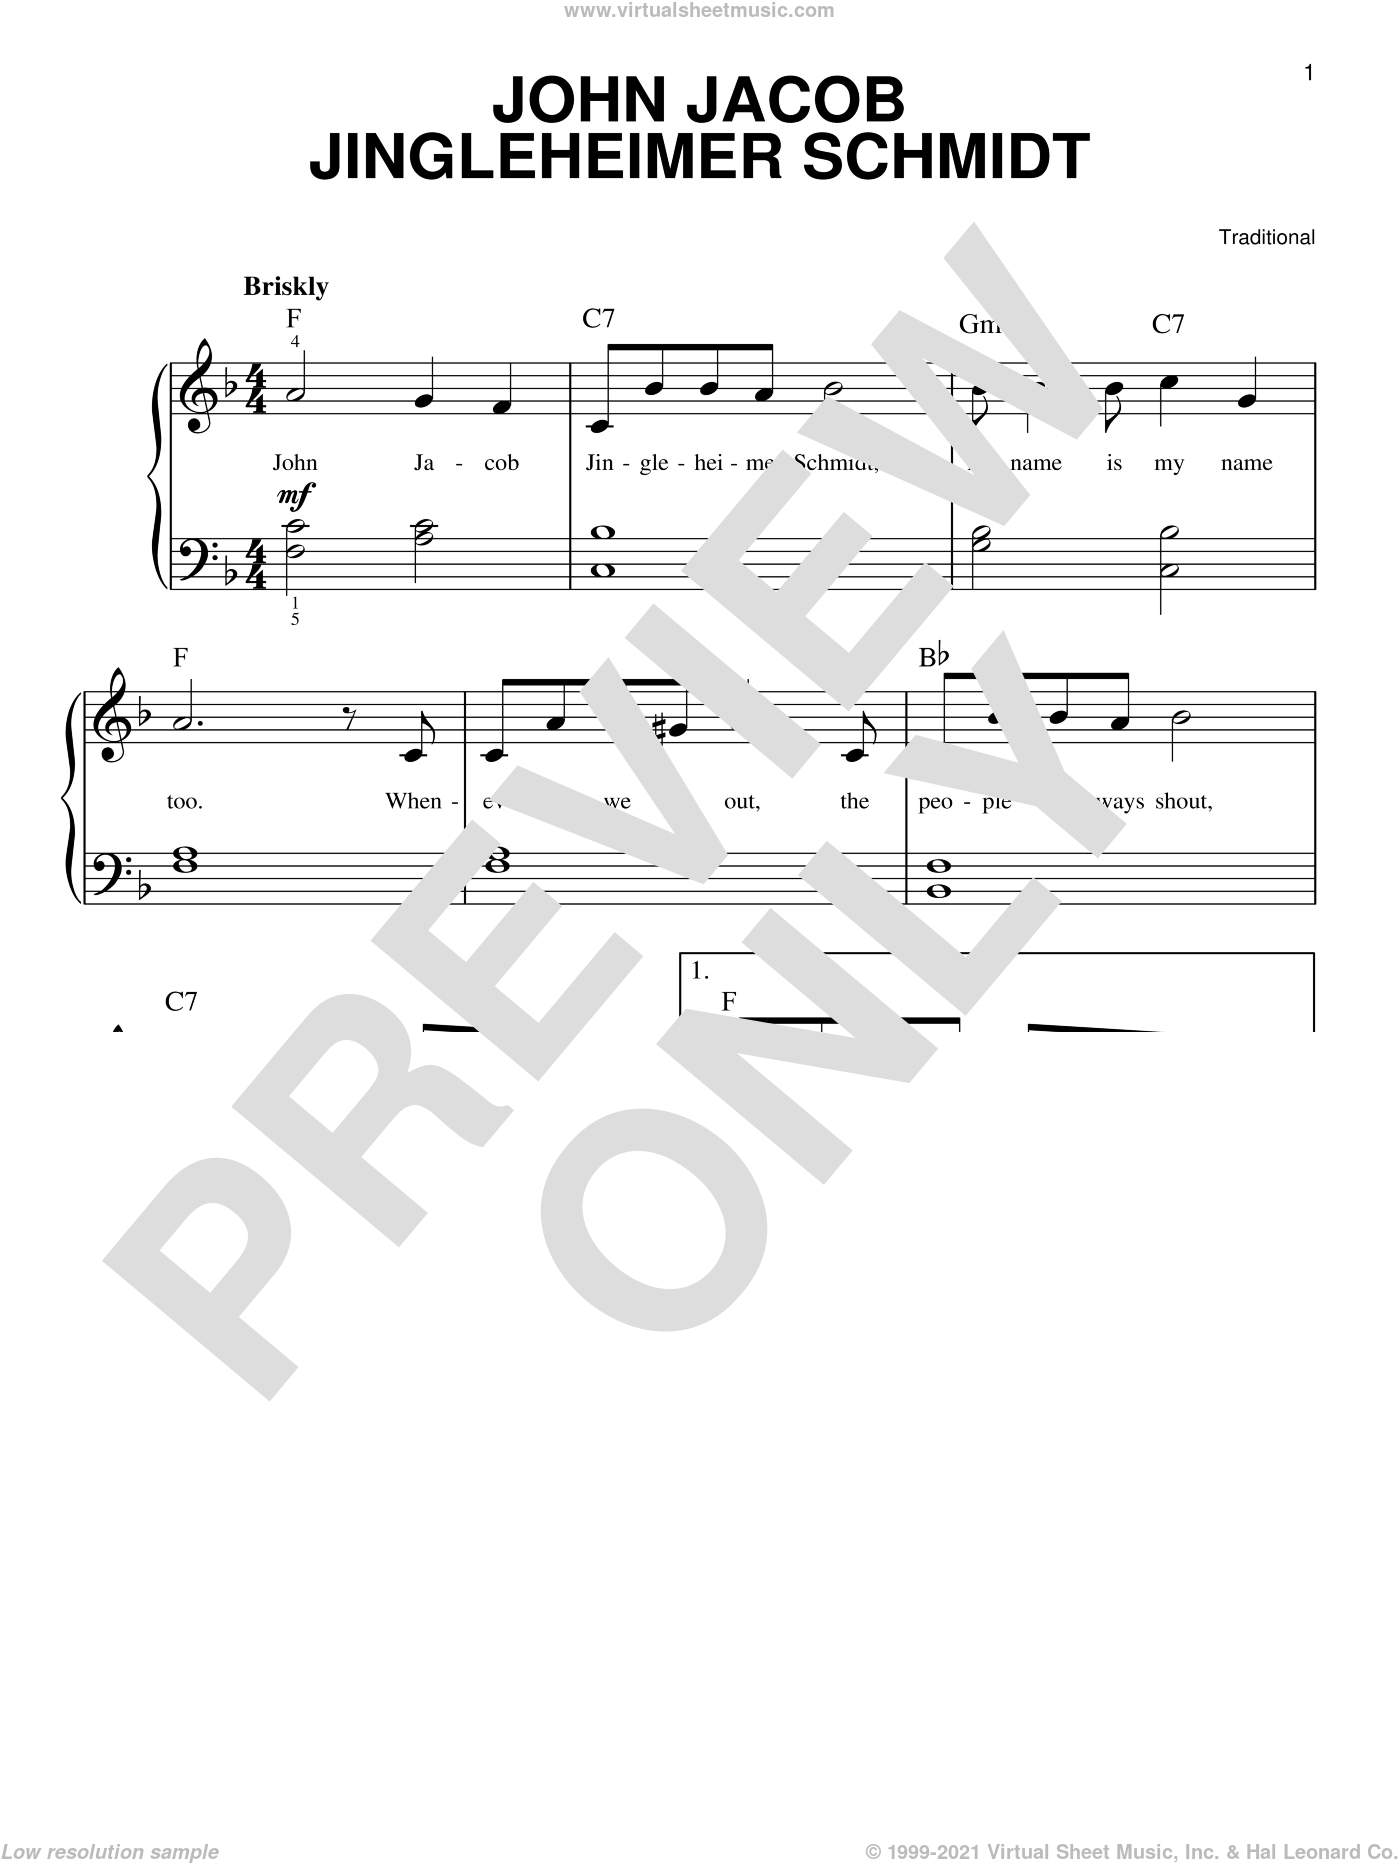 John Jacob Jingleheimer Schmidt sheet music for piano solo, easy skill level